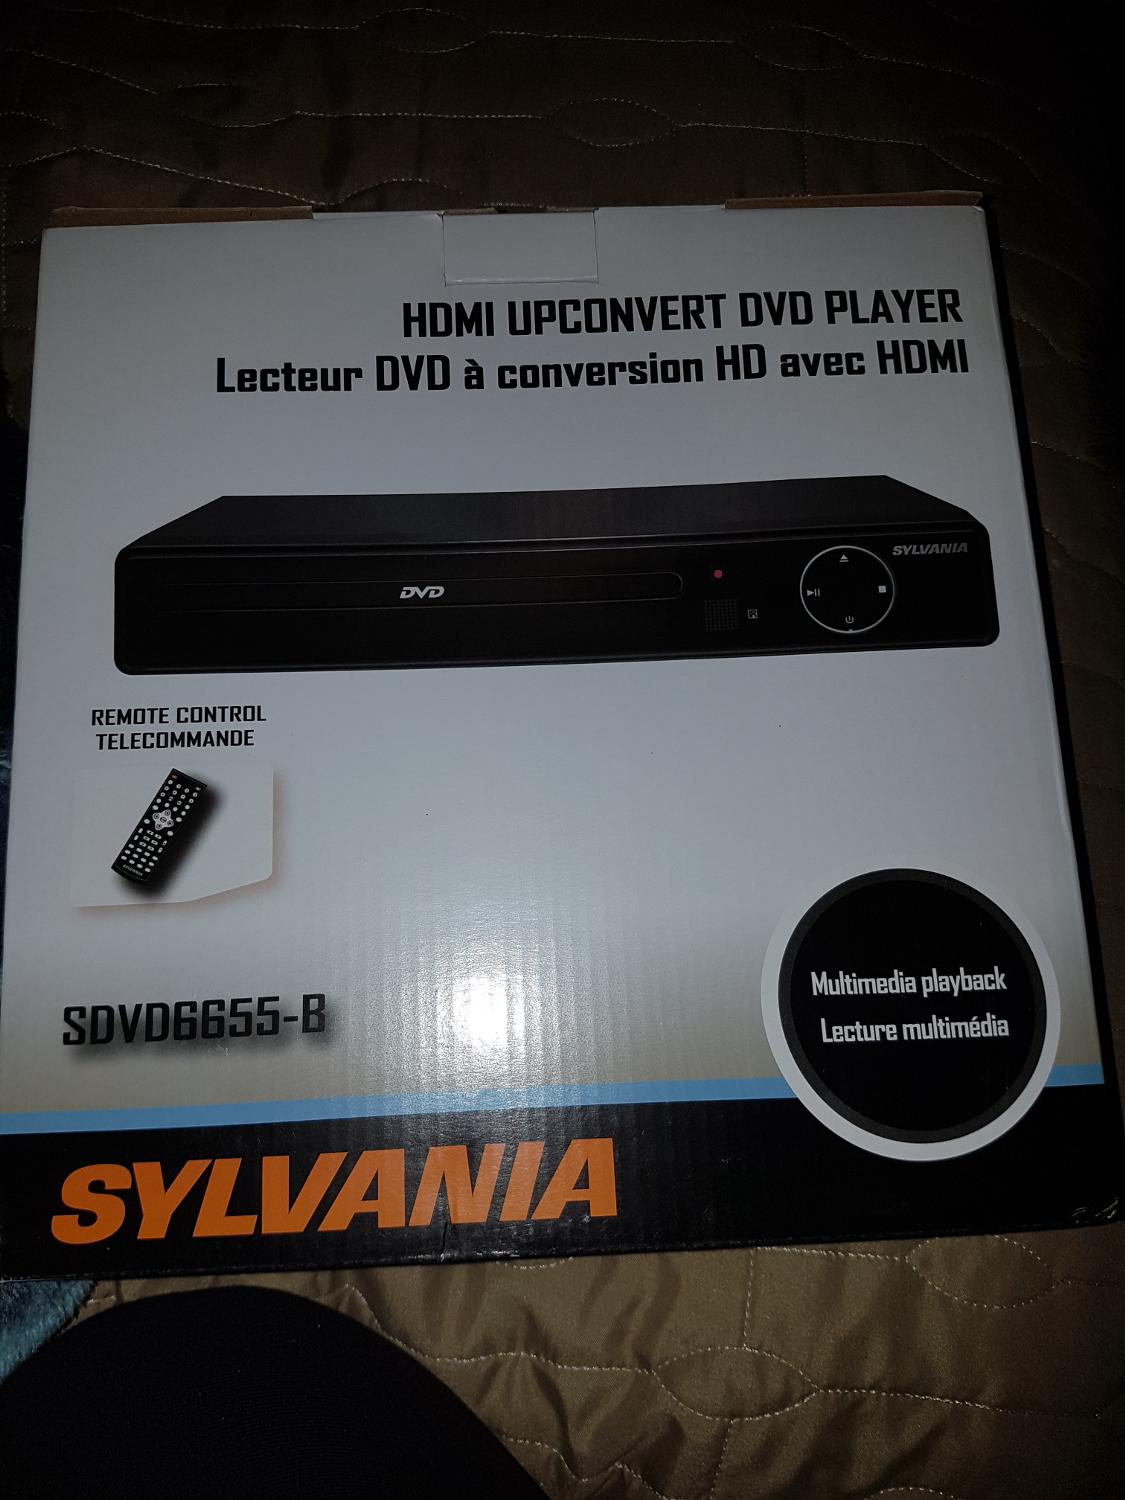 Find more Sylvania Dvd Player New In Box for sale at up to 90% off